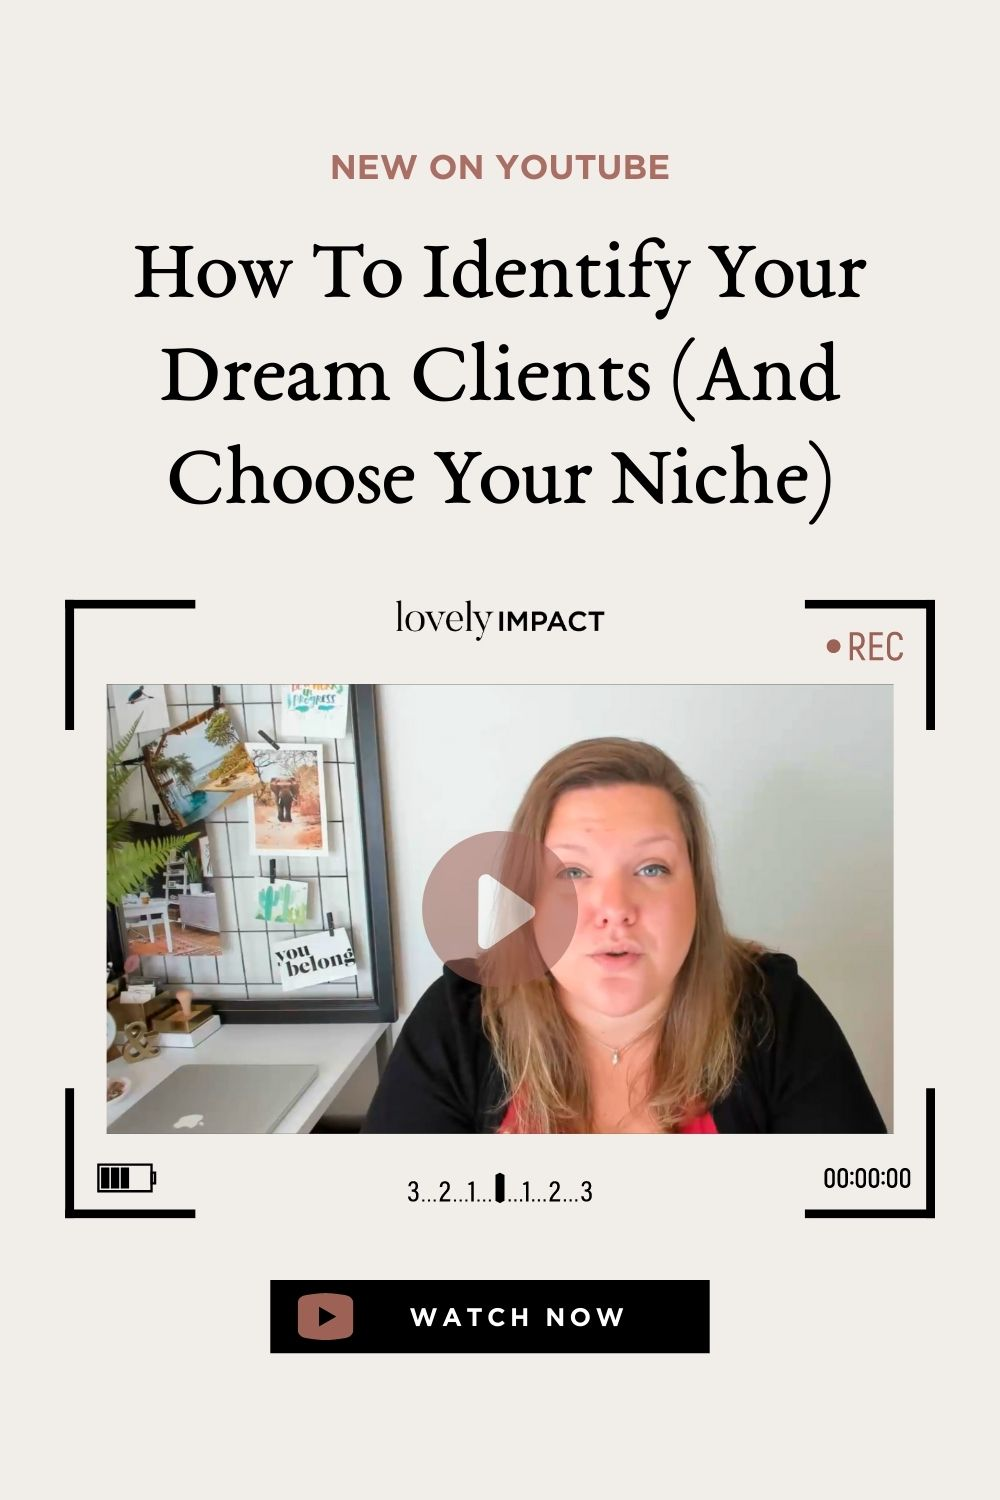 How To Identify Your Dream Clients (And Choose A Niche)